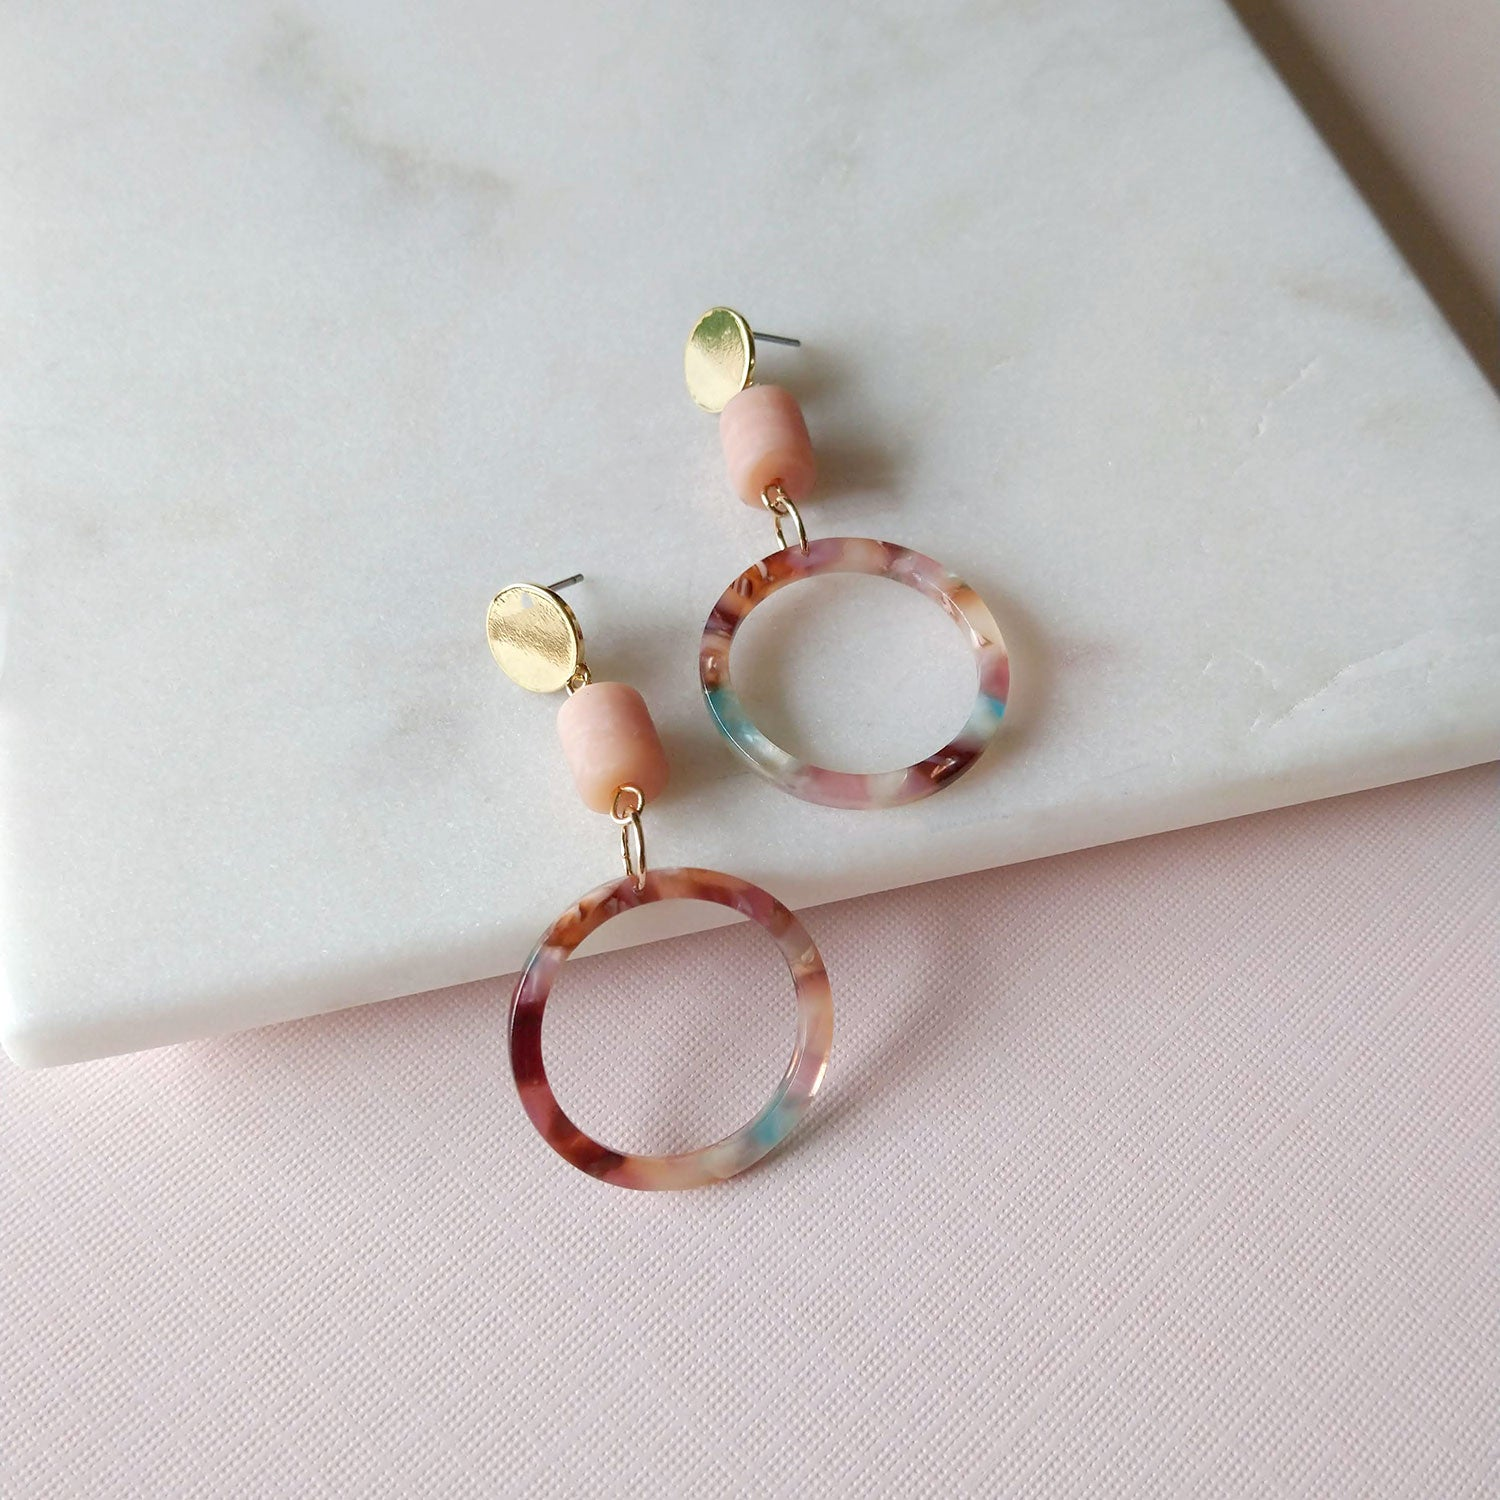 acrylic hoops earrings tortoiseshell